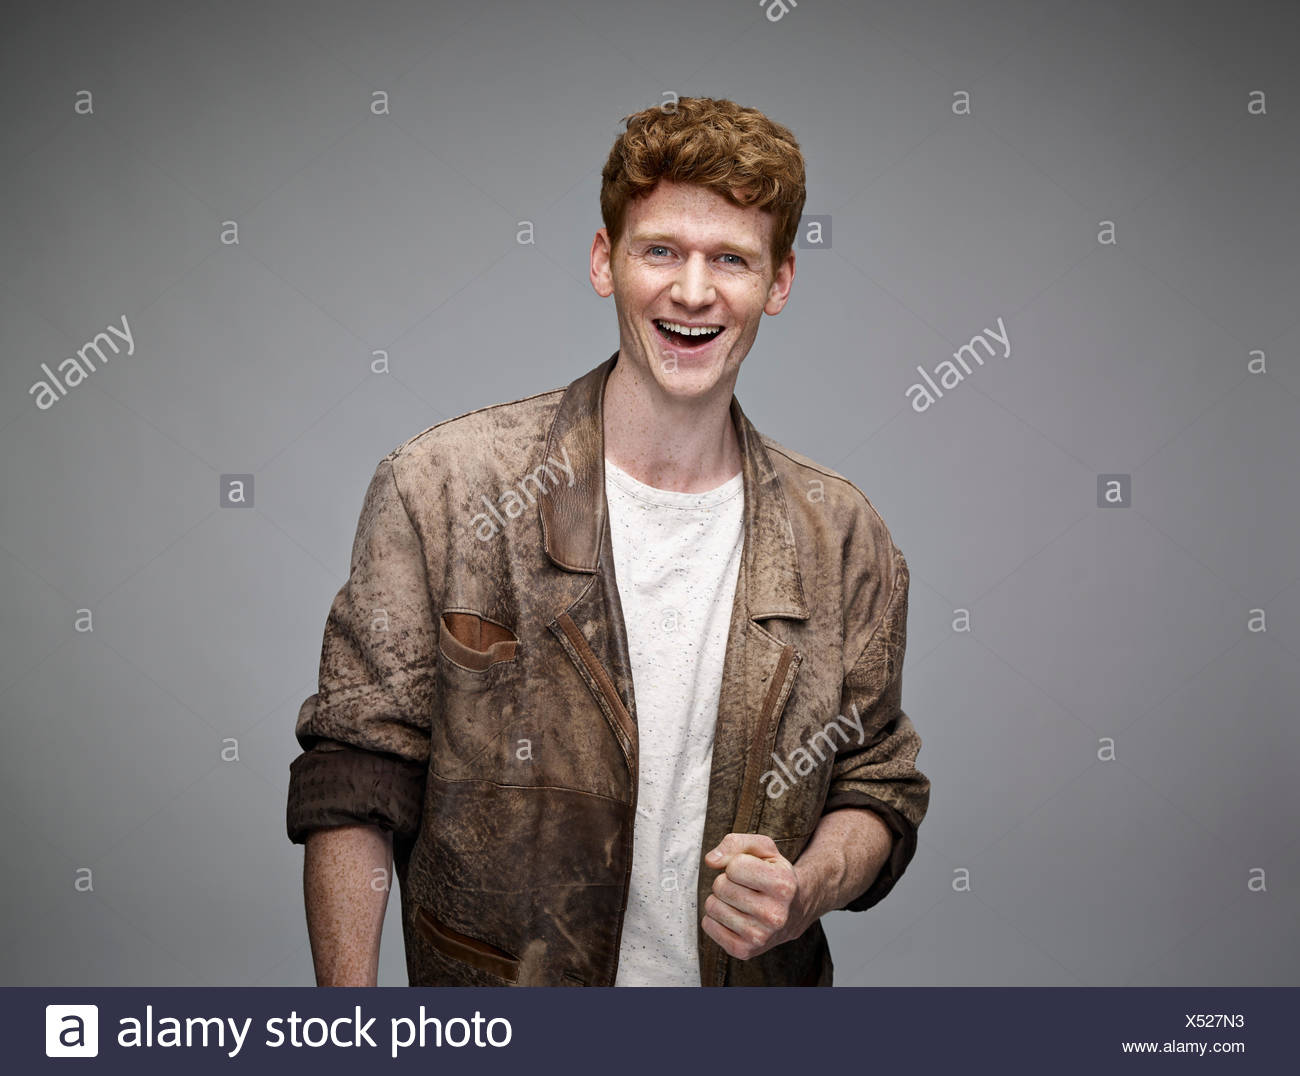 Portrait of laughing redheaded man - Stock Image